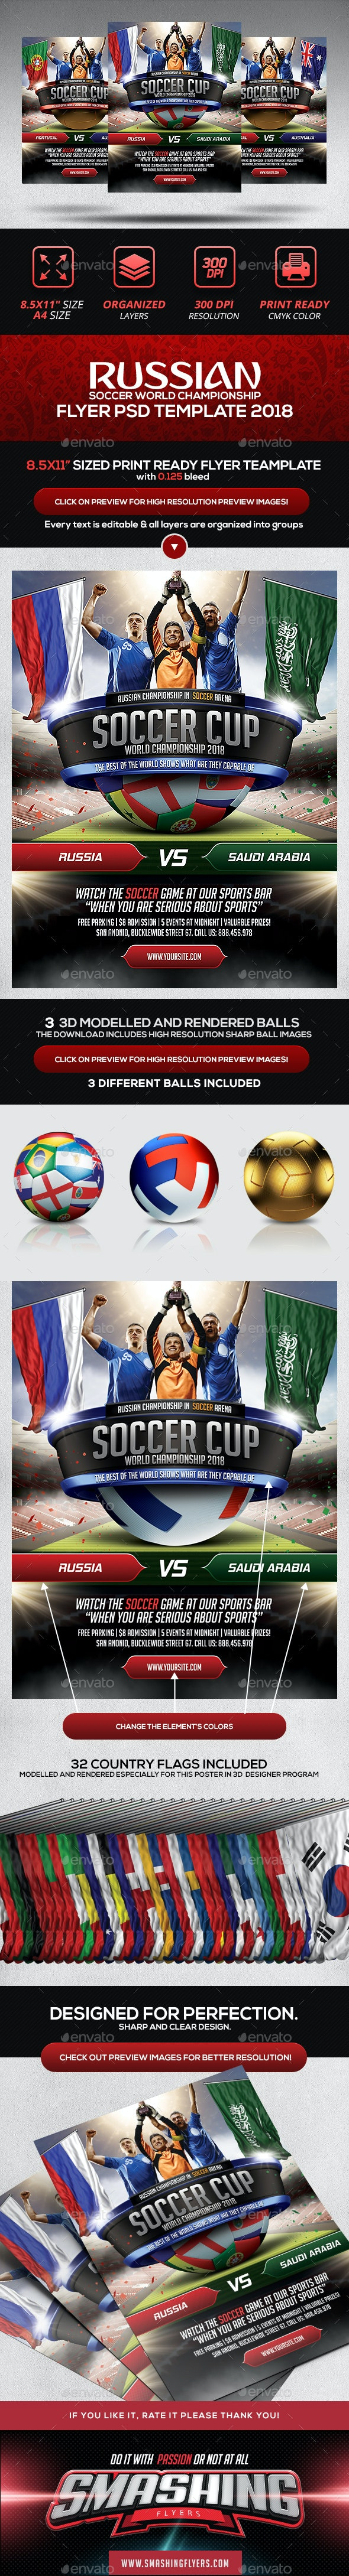 Soccer Cup Poster Template - Sports Events